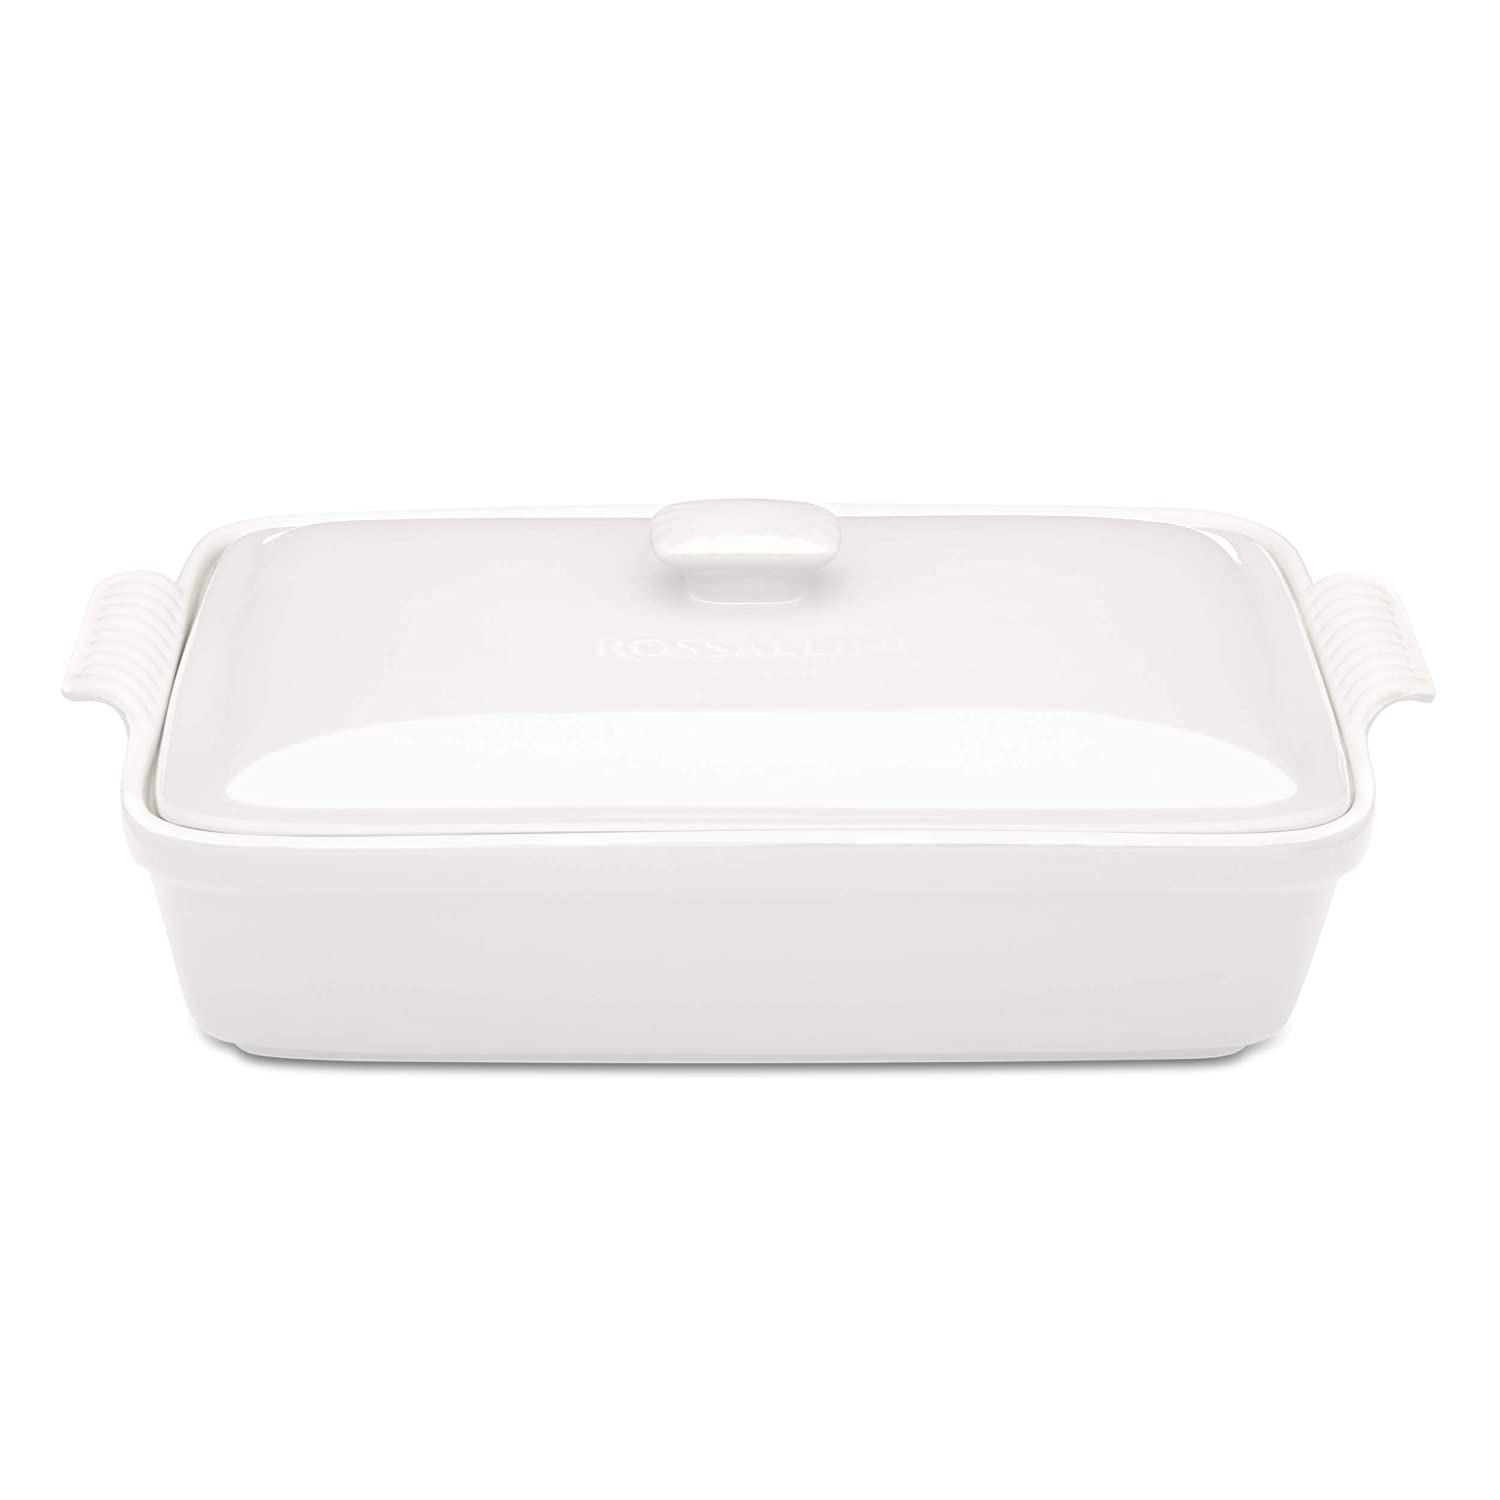 Rossallini Stoneware Casserole Dish Bakeware Set with Lid, Covered Rectangular Dinnerware, Large 4 Quart, 13 by 9 Inch (Glossy White)